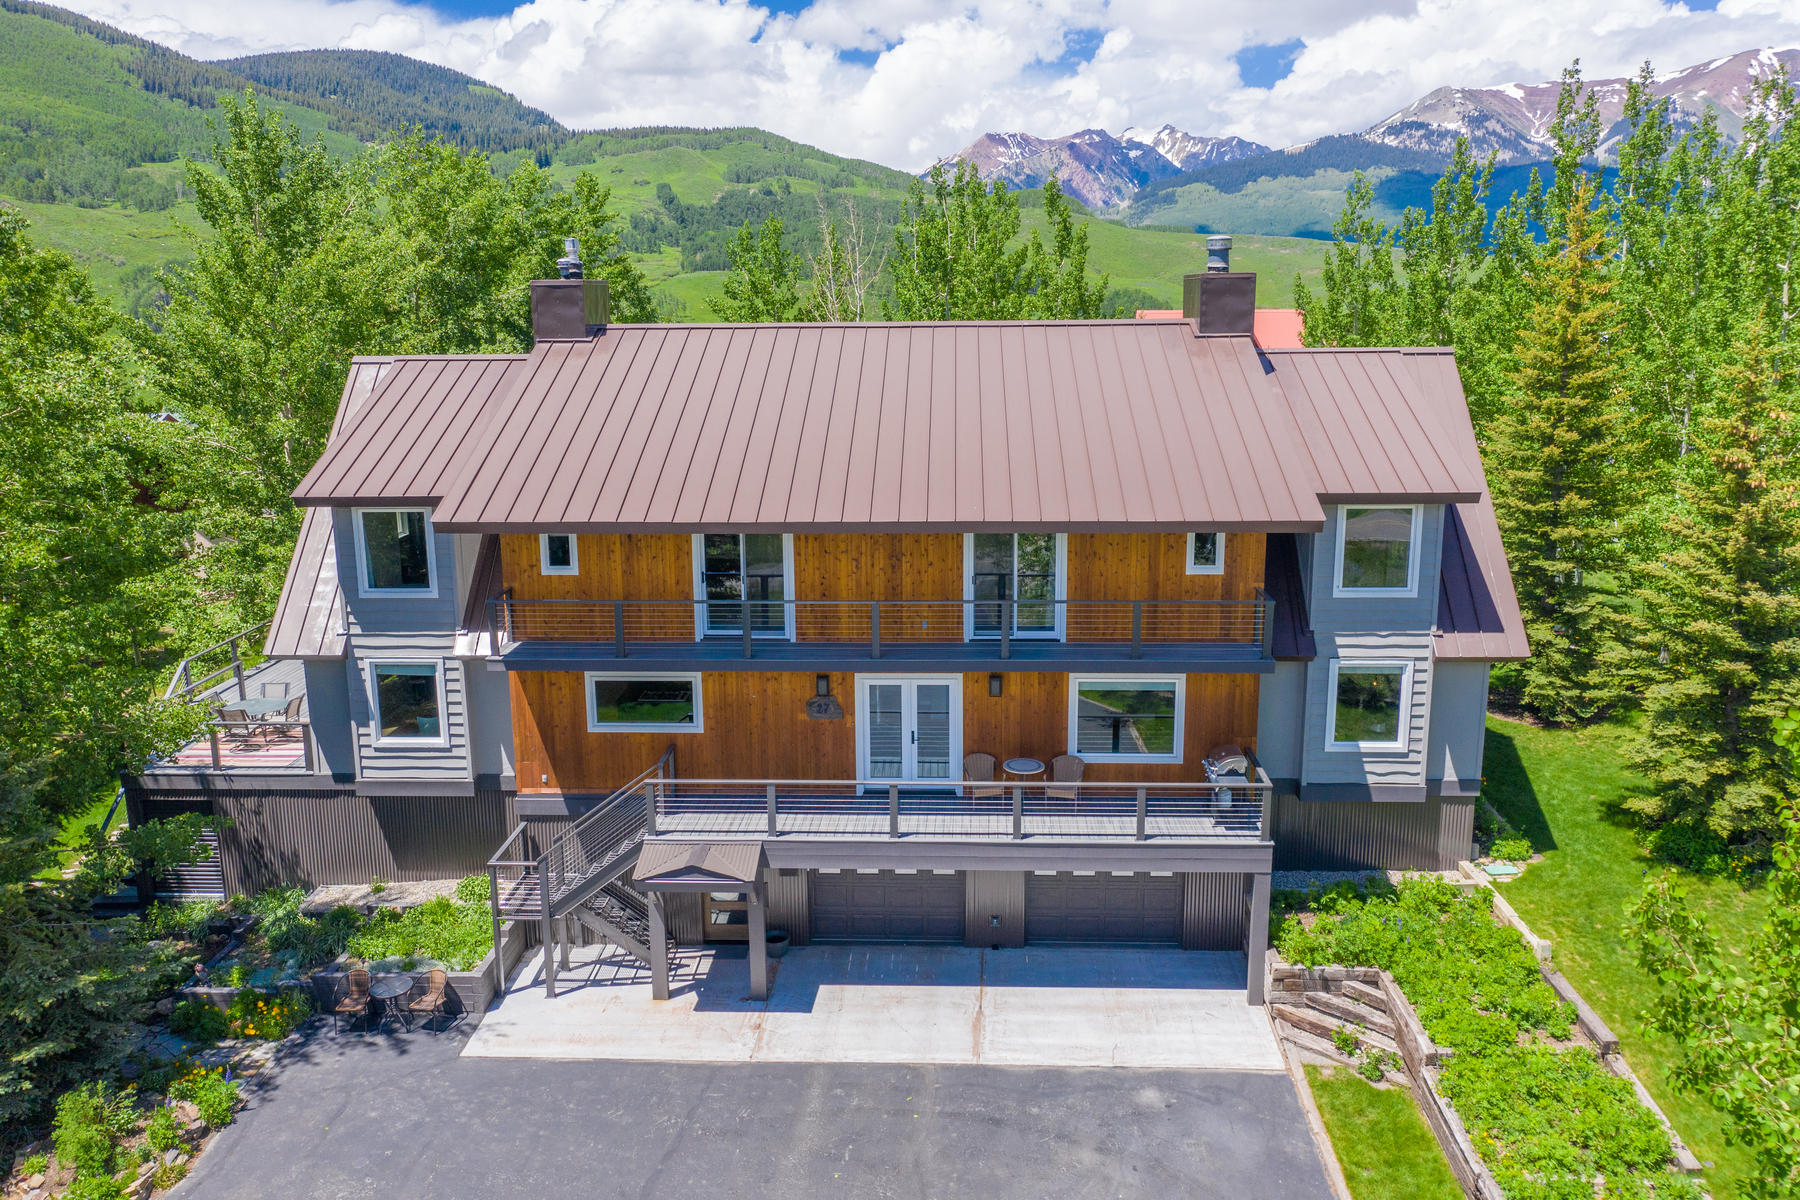 Single Family Homes for Active at Spectacular Mountain Home 27 Belleview Drive Mount Crested Butte, Colorado 81225 United States